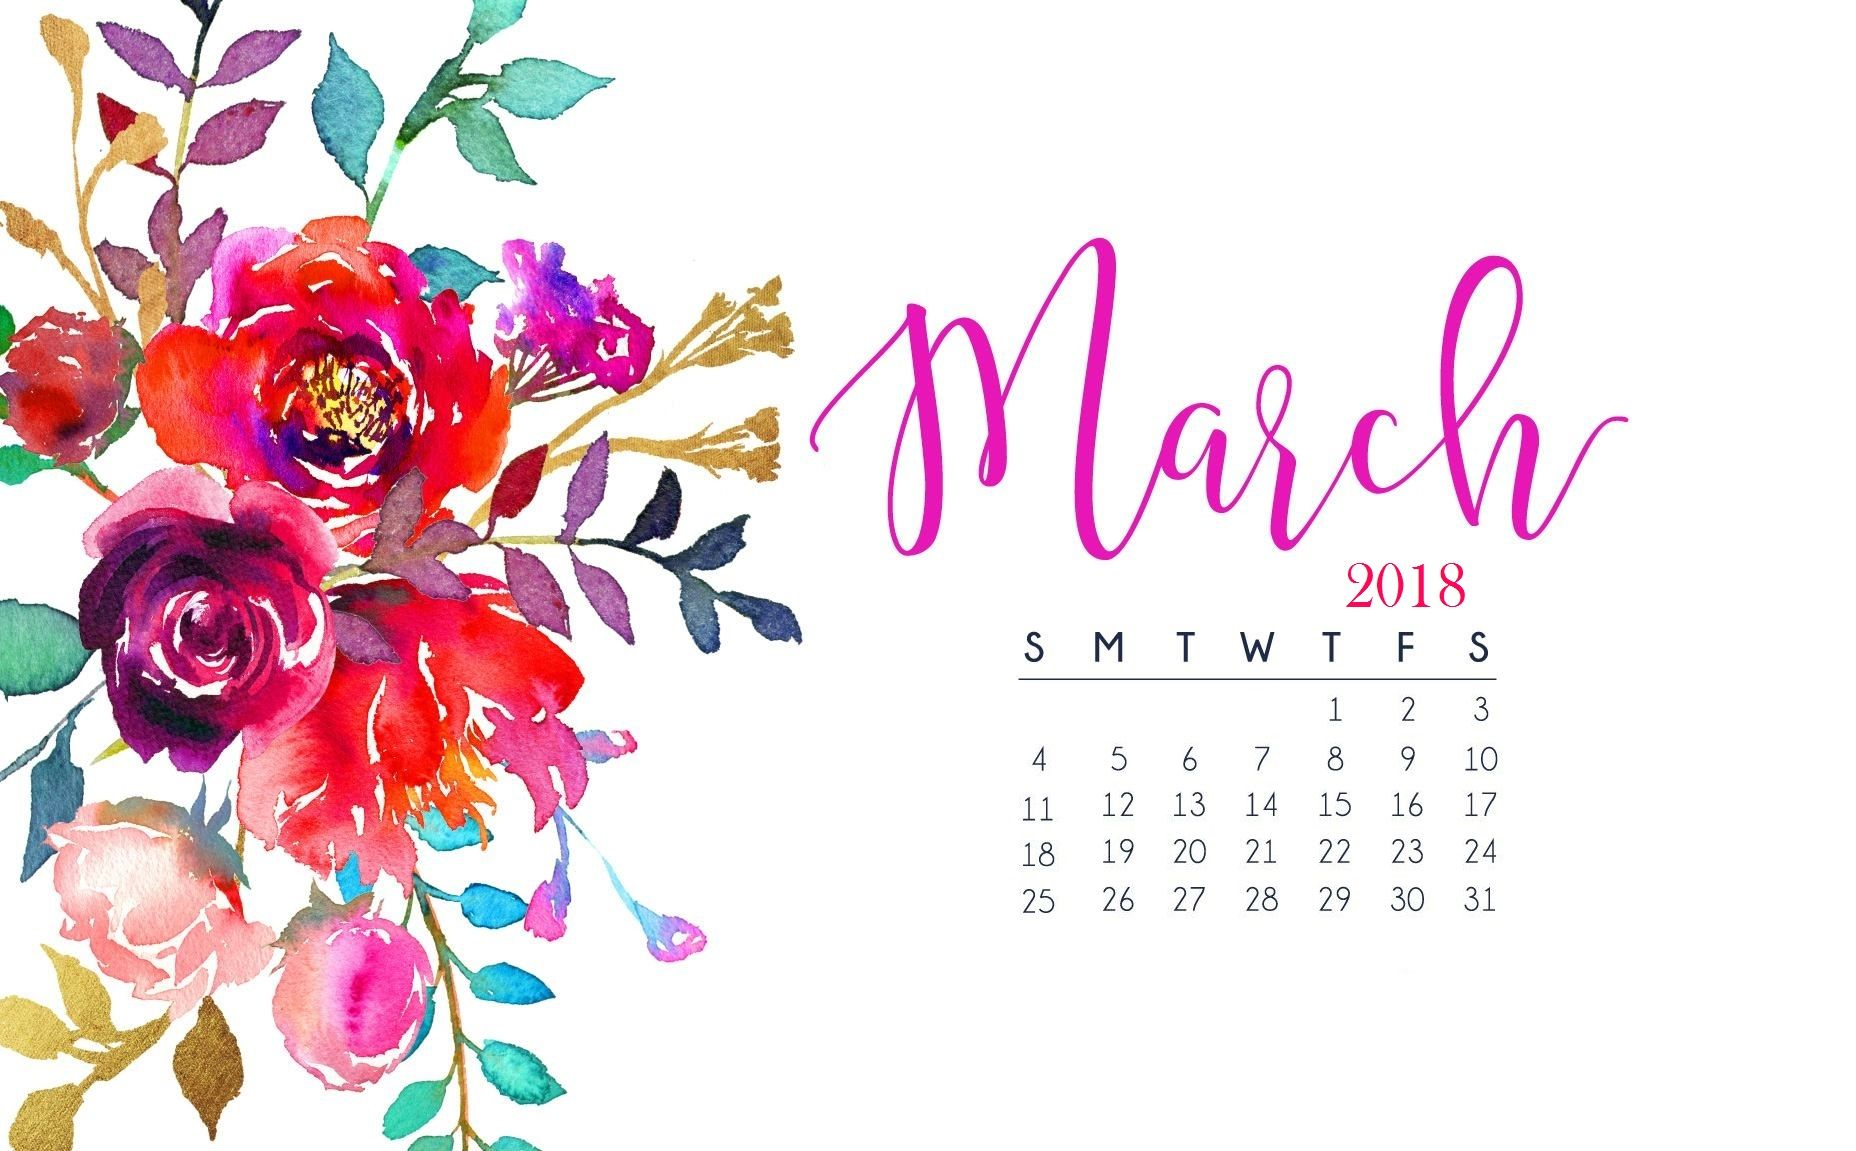 Floral March 2018 Wallpaper Calendar Jpg 1 856 1 151 Pixels